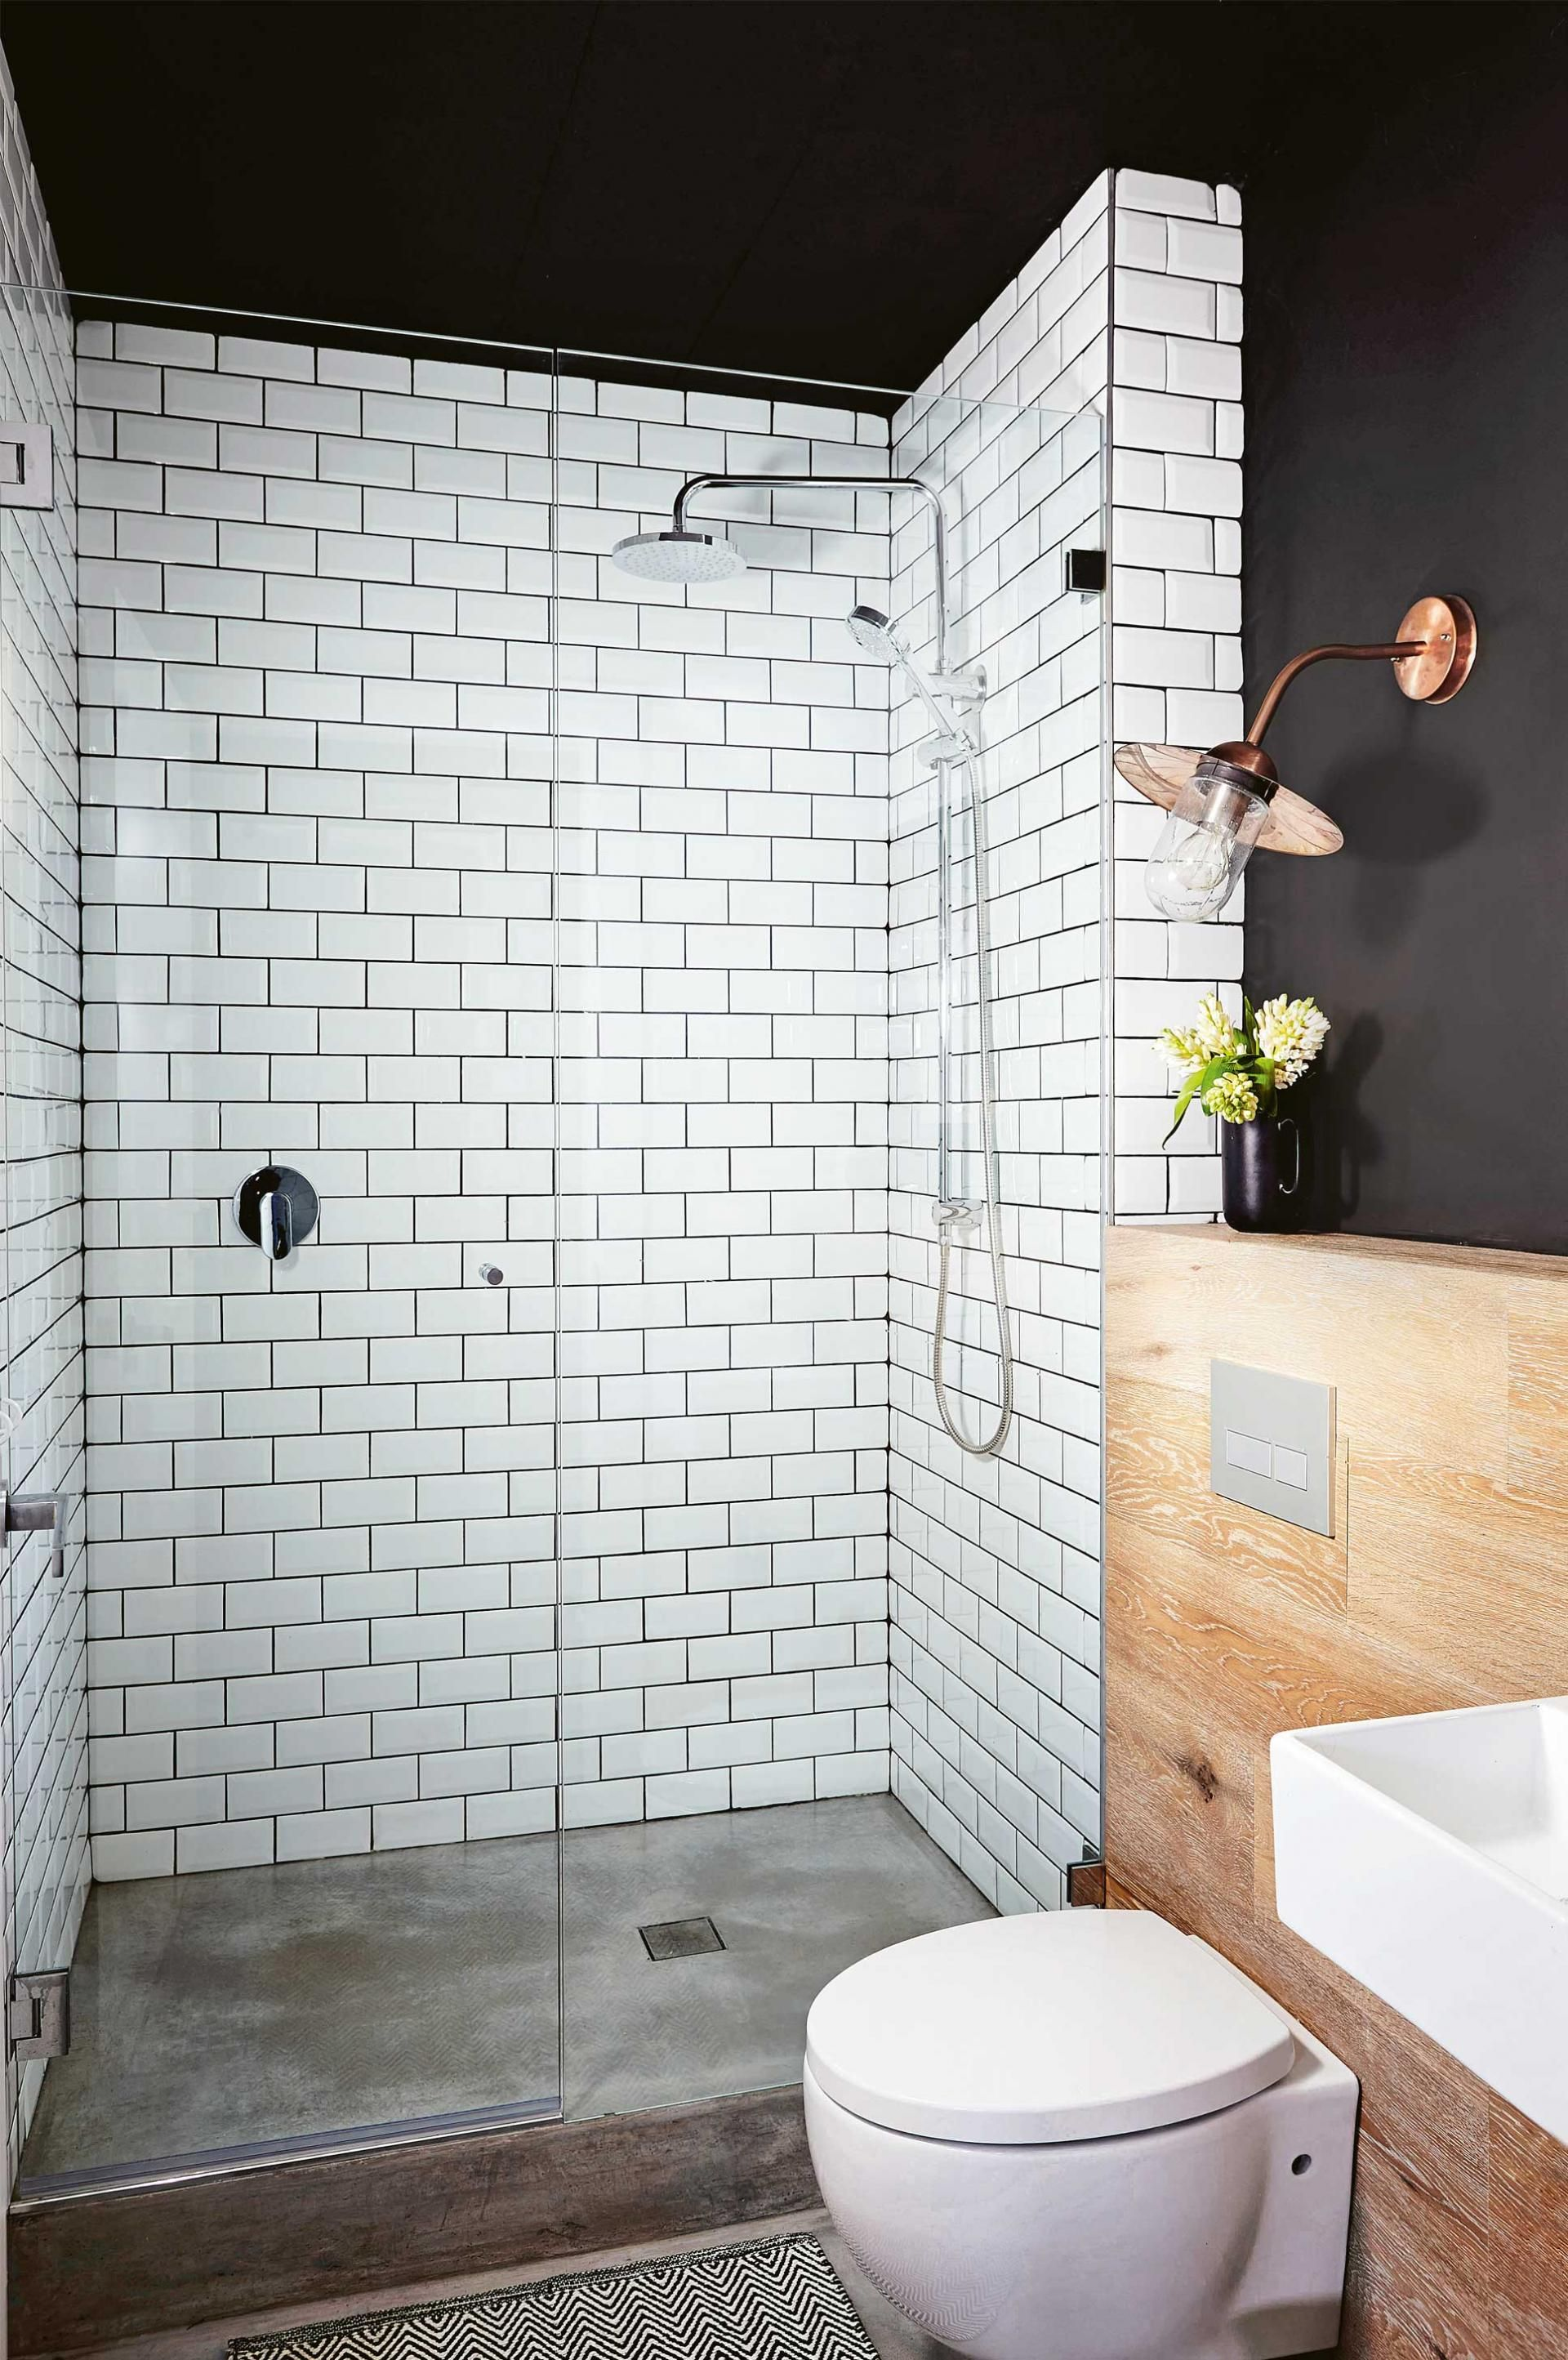 wow. so bold with the mix of materials, black walls, white tiles